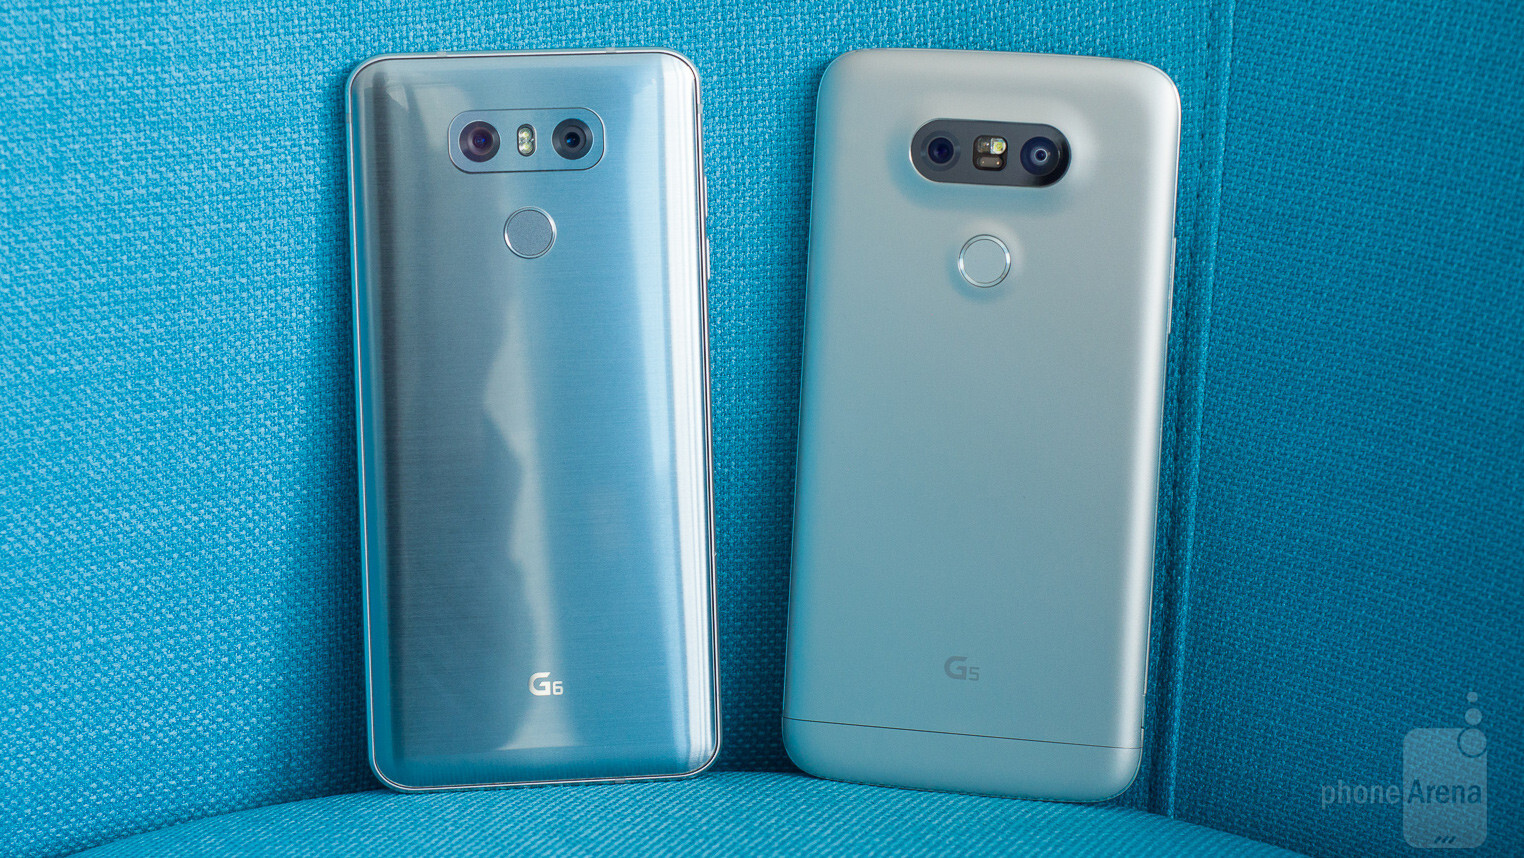 Sell Phone Comparison >> LG G6 vs LG G5 - PhoneArena